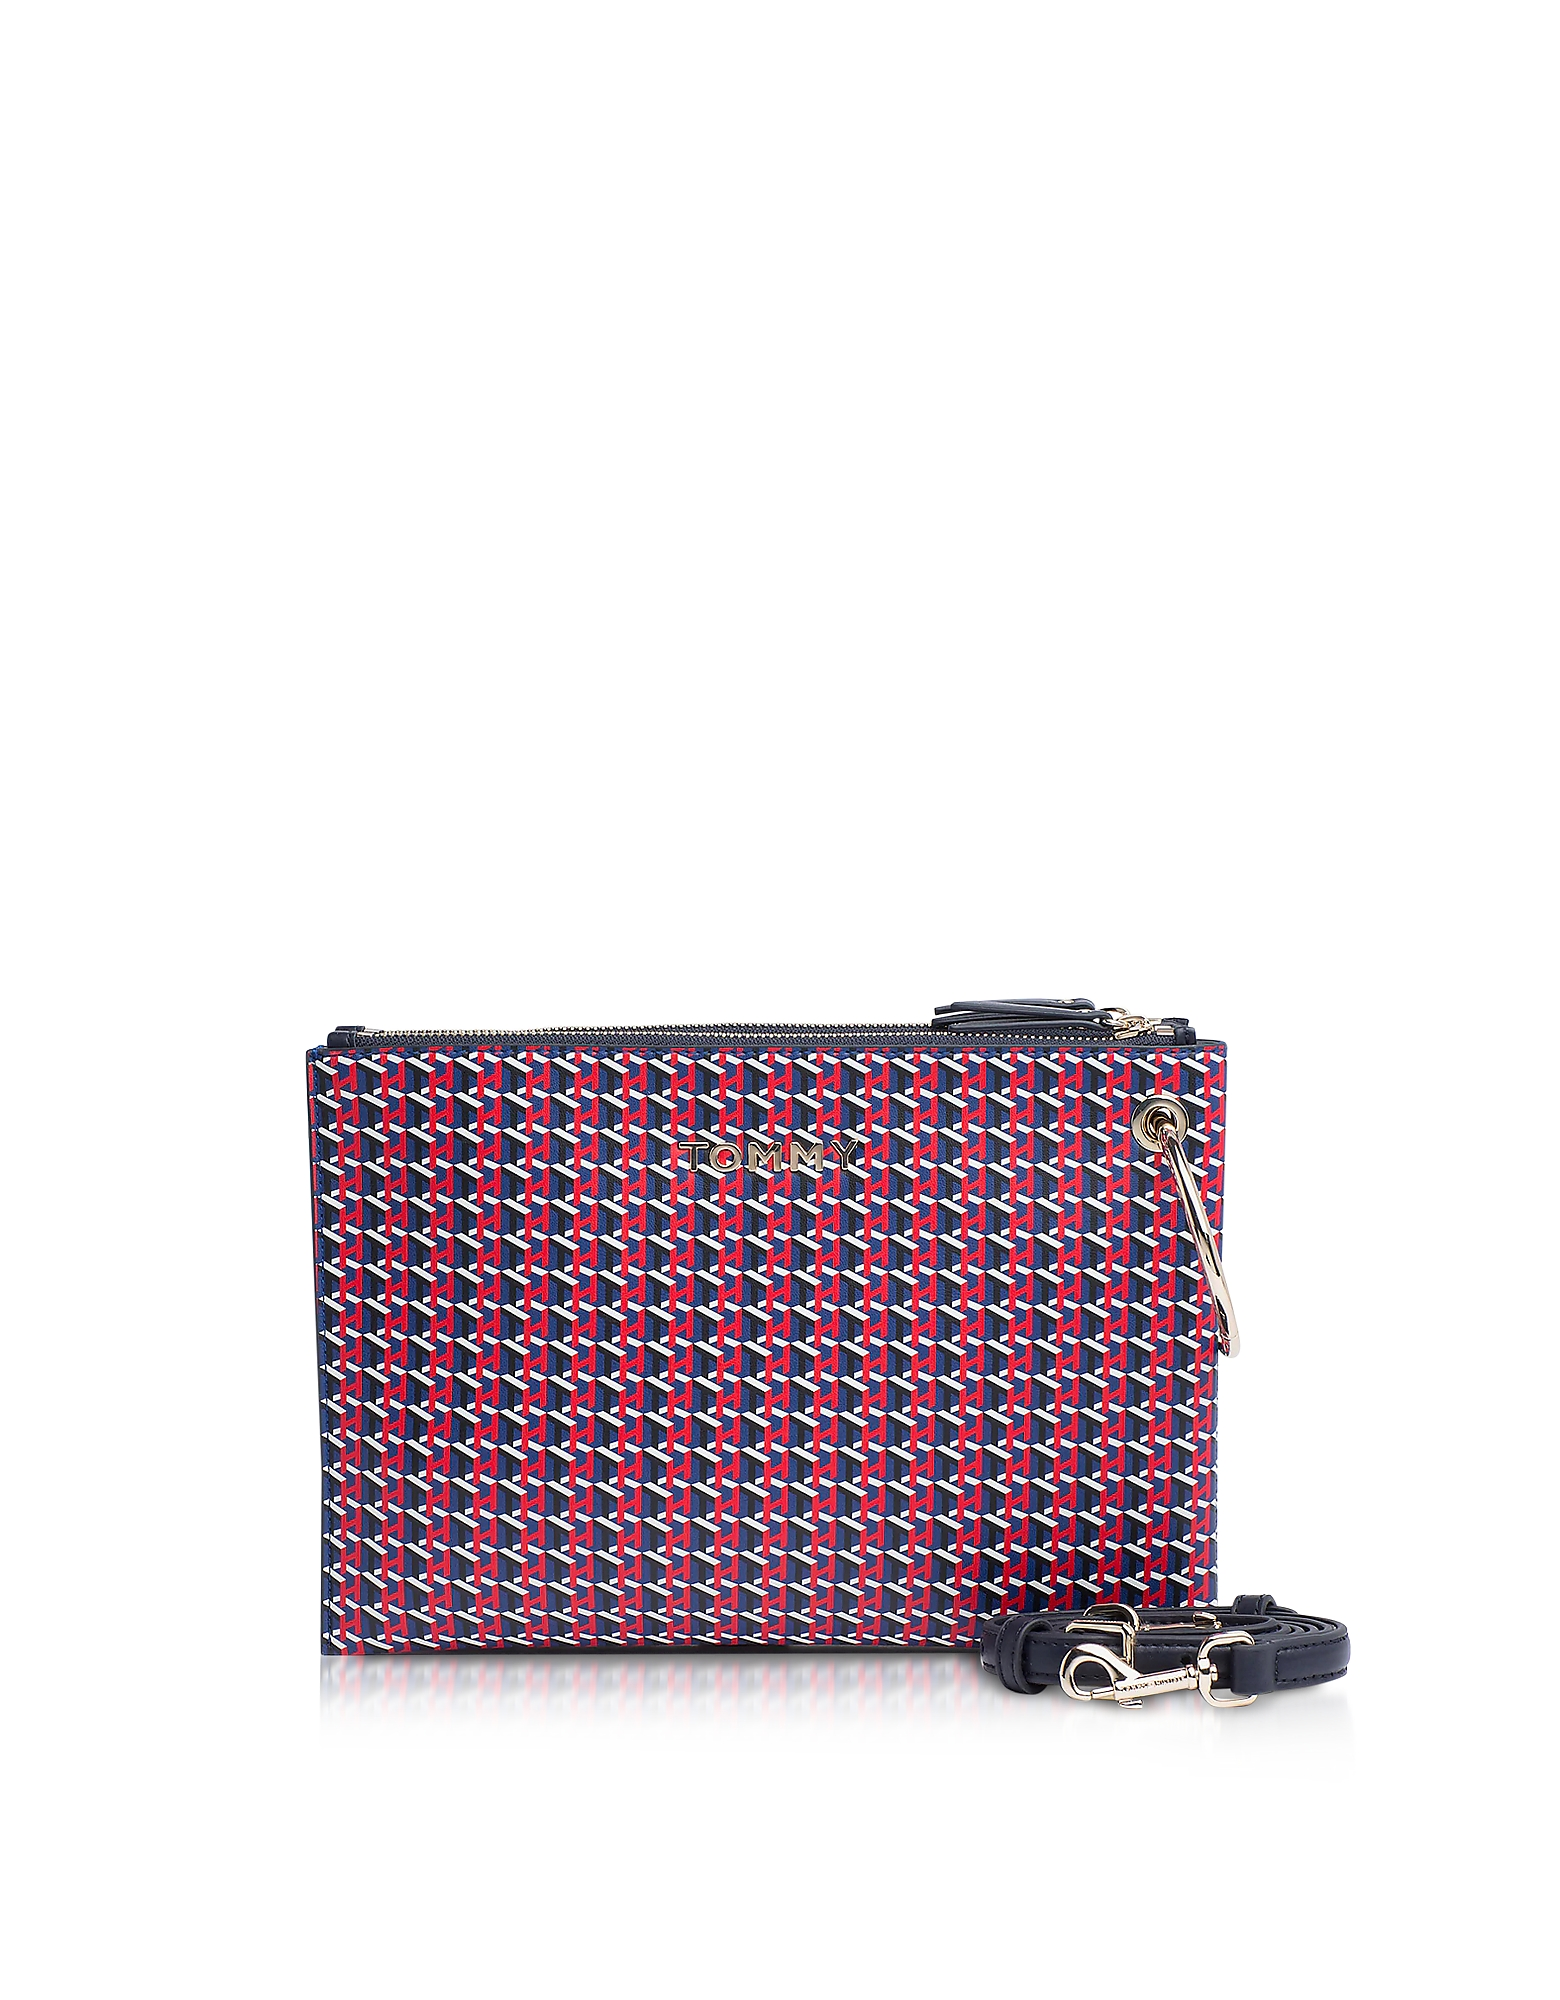 Tommy Hilfiger Designer Handbags, Bifold Monogram Item Statement Clutch